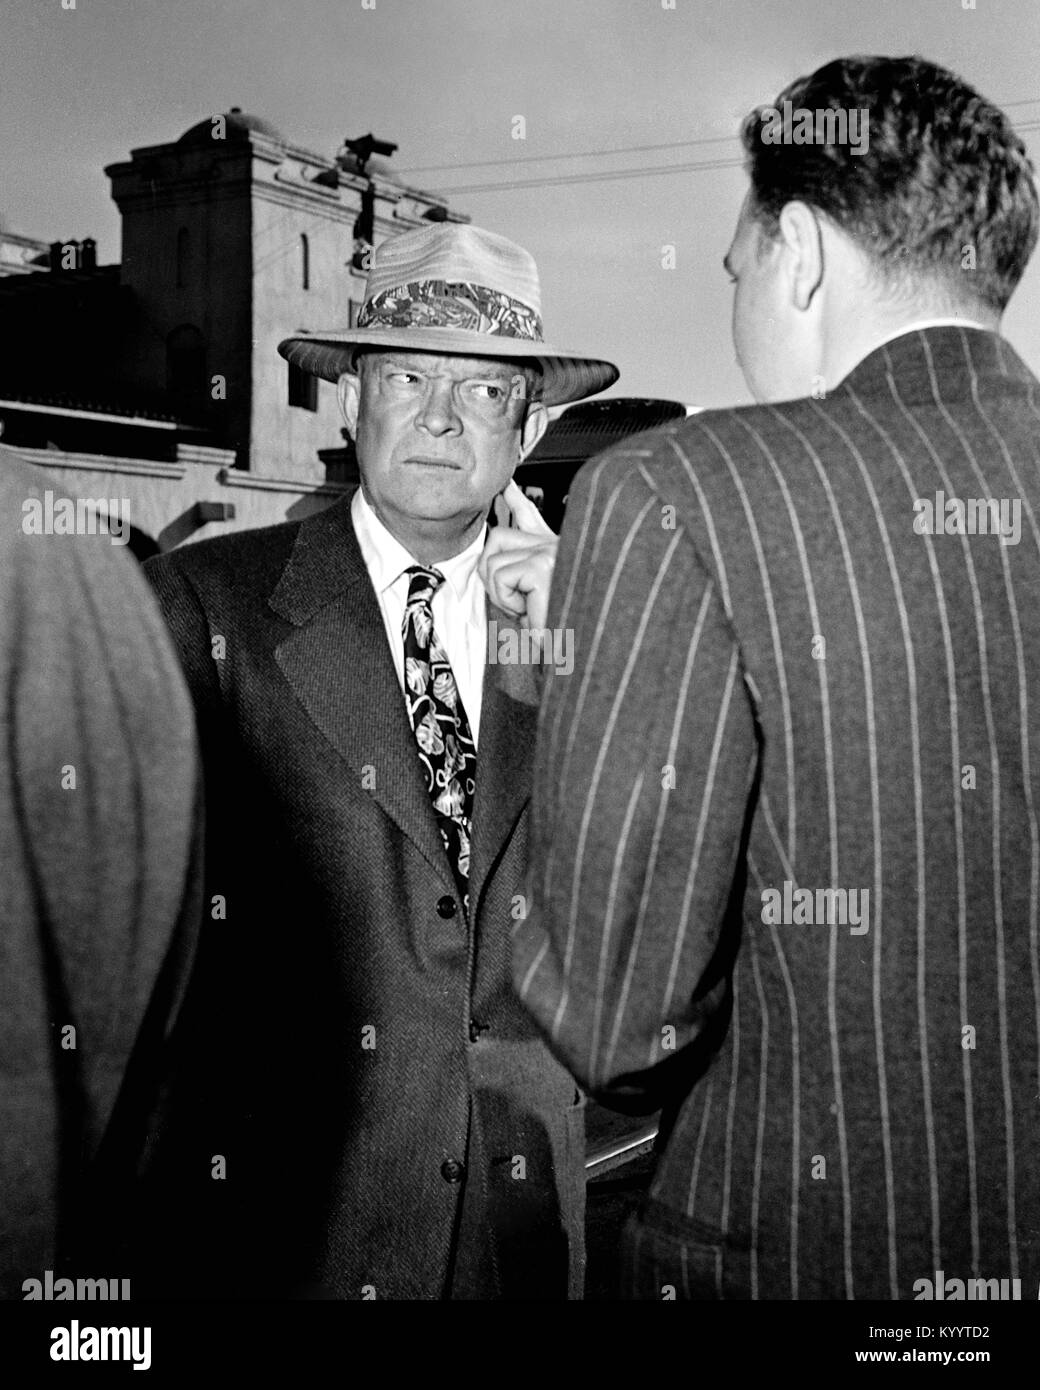 President Dwight Eisenhower looks curiously at Richard Nixon with his back to the camera. circa 1957. - Stock Image